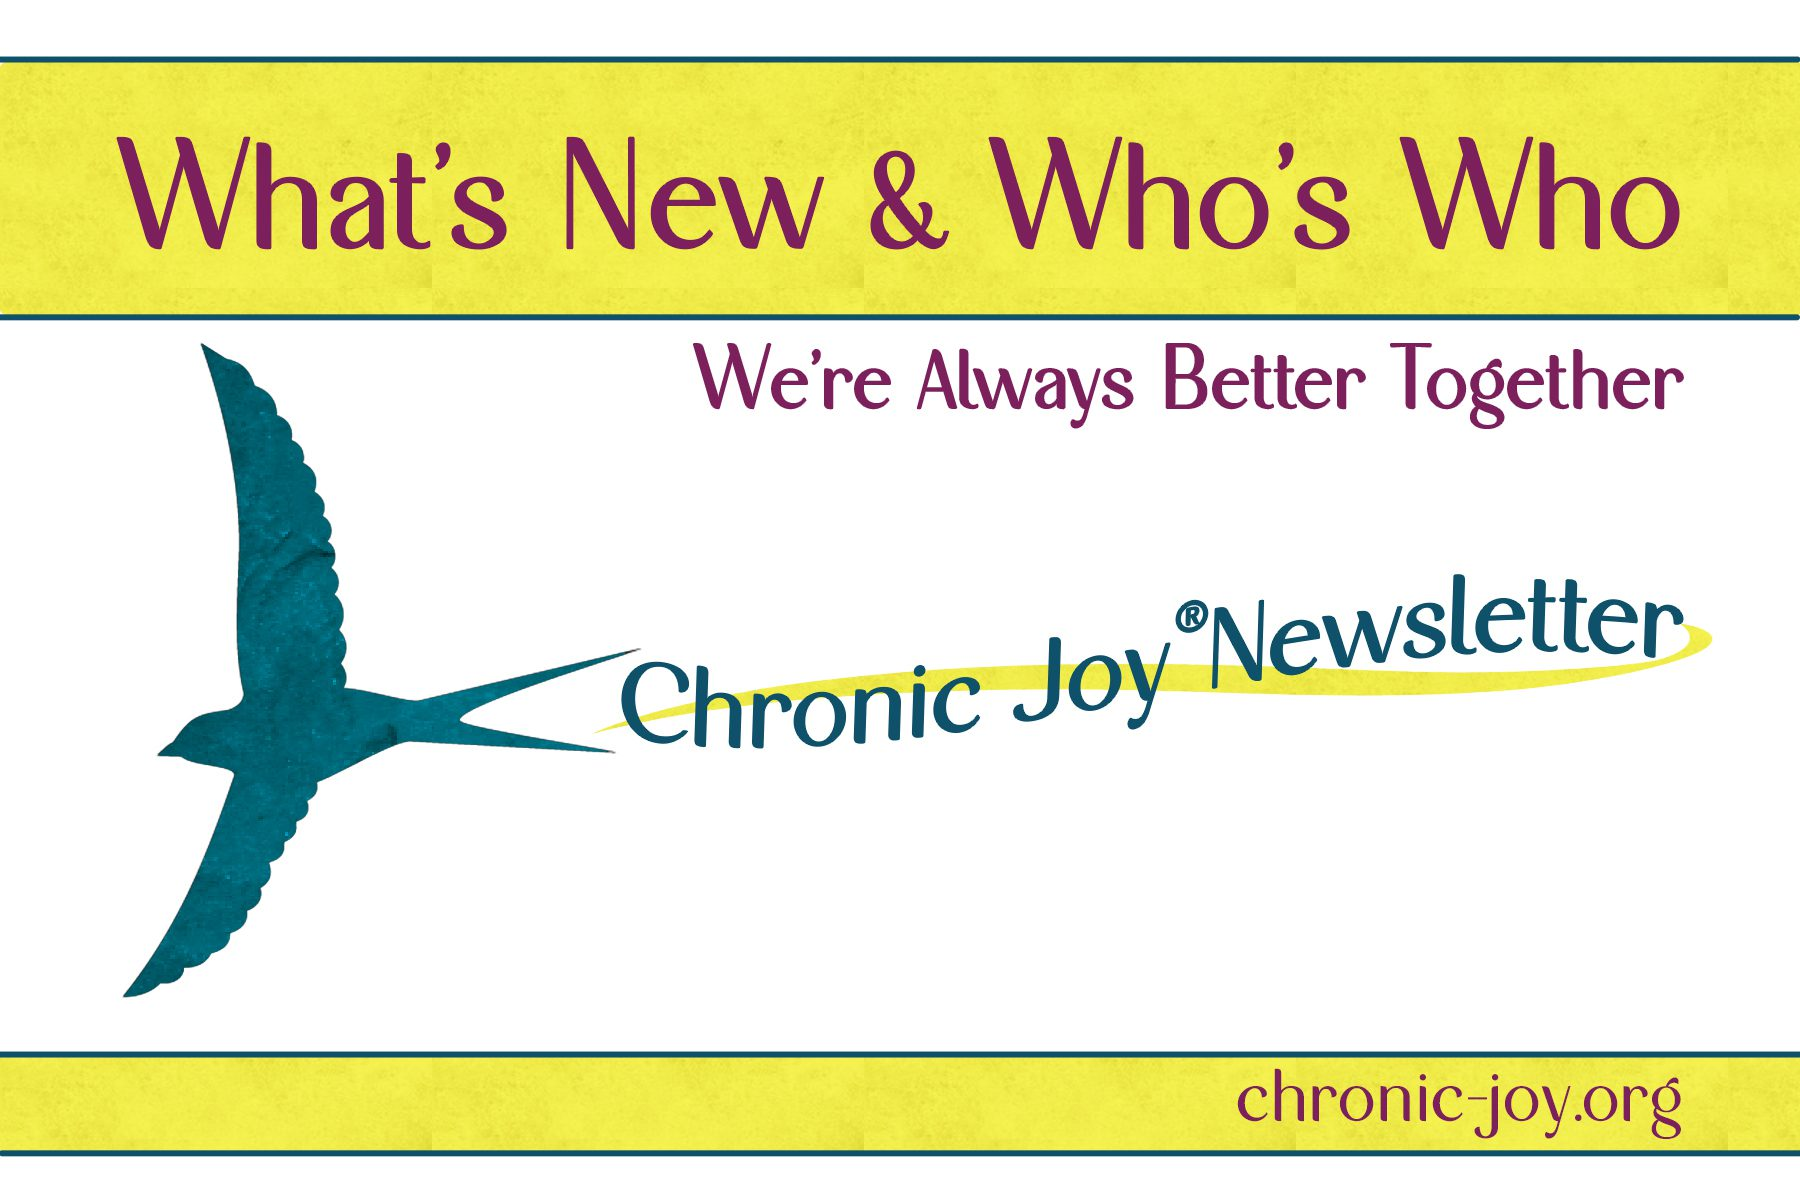 What's New & Who's Who • Newsletter